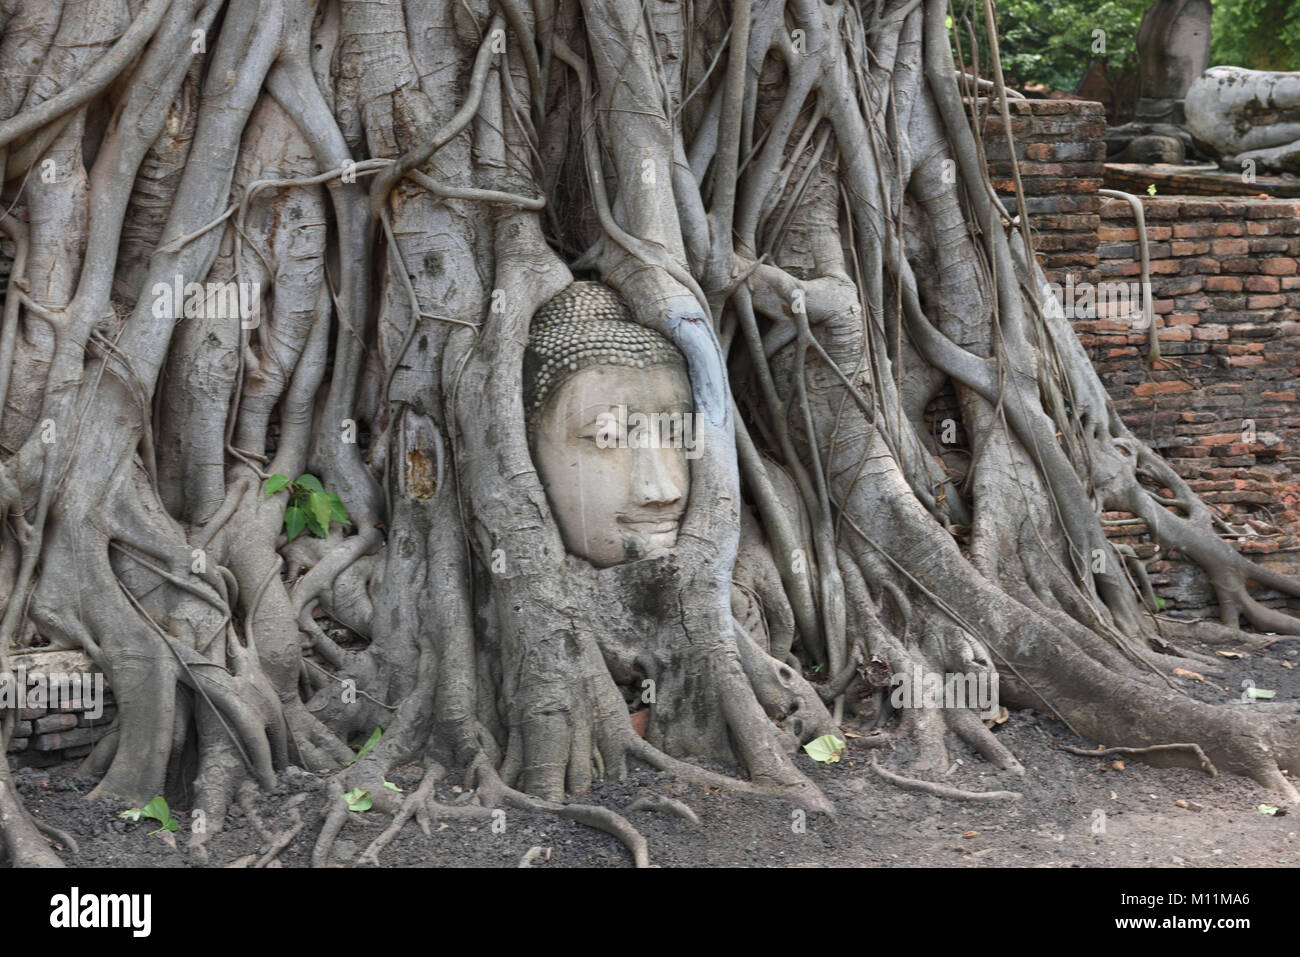 Carved head of the Buddha entwined in the roots of a banyan tree in the grounds of Wat Mahathat, Ayutthaya, Thailand Stock Photo